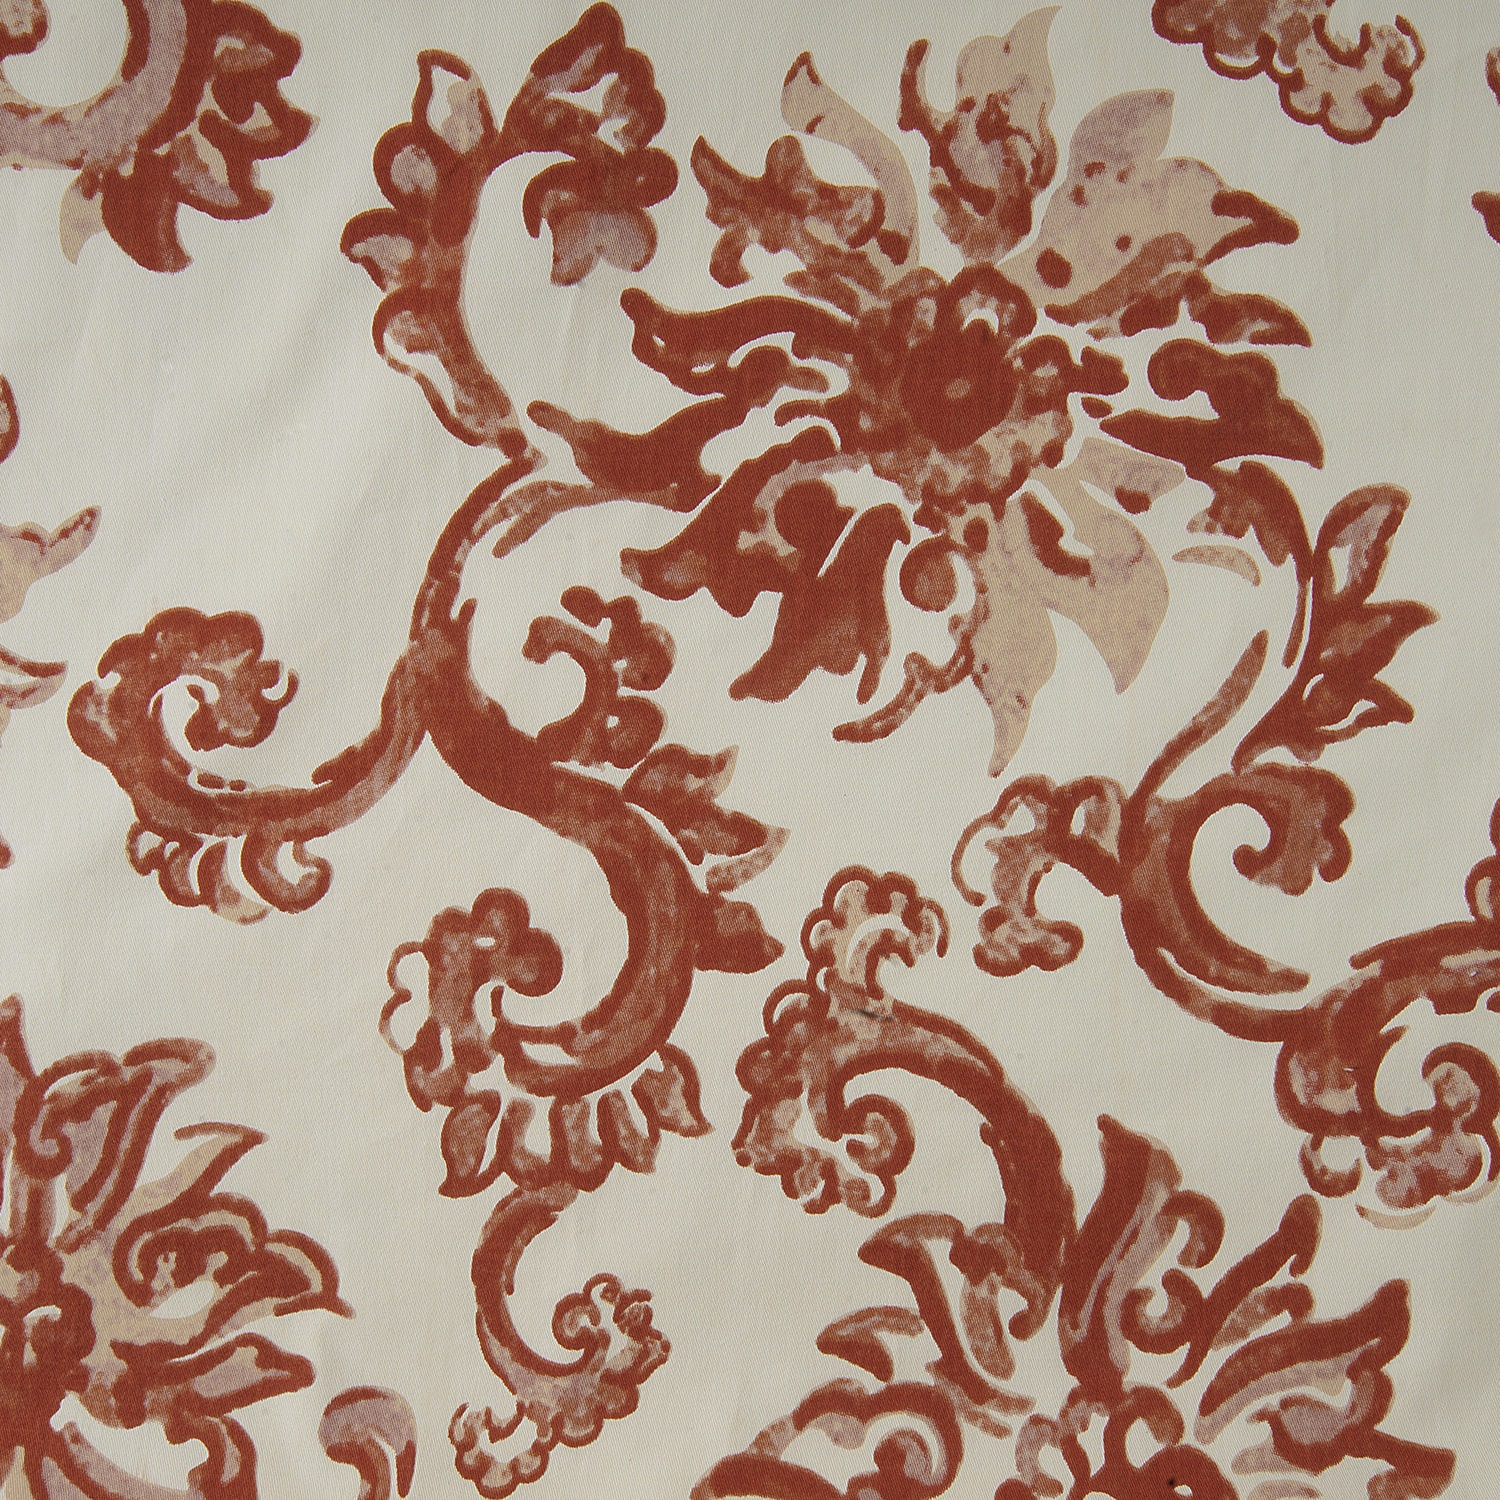 Indonesian Rust Printed Cotton Twill Swatch